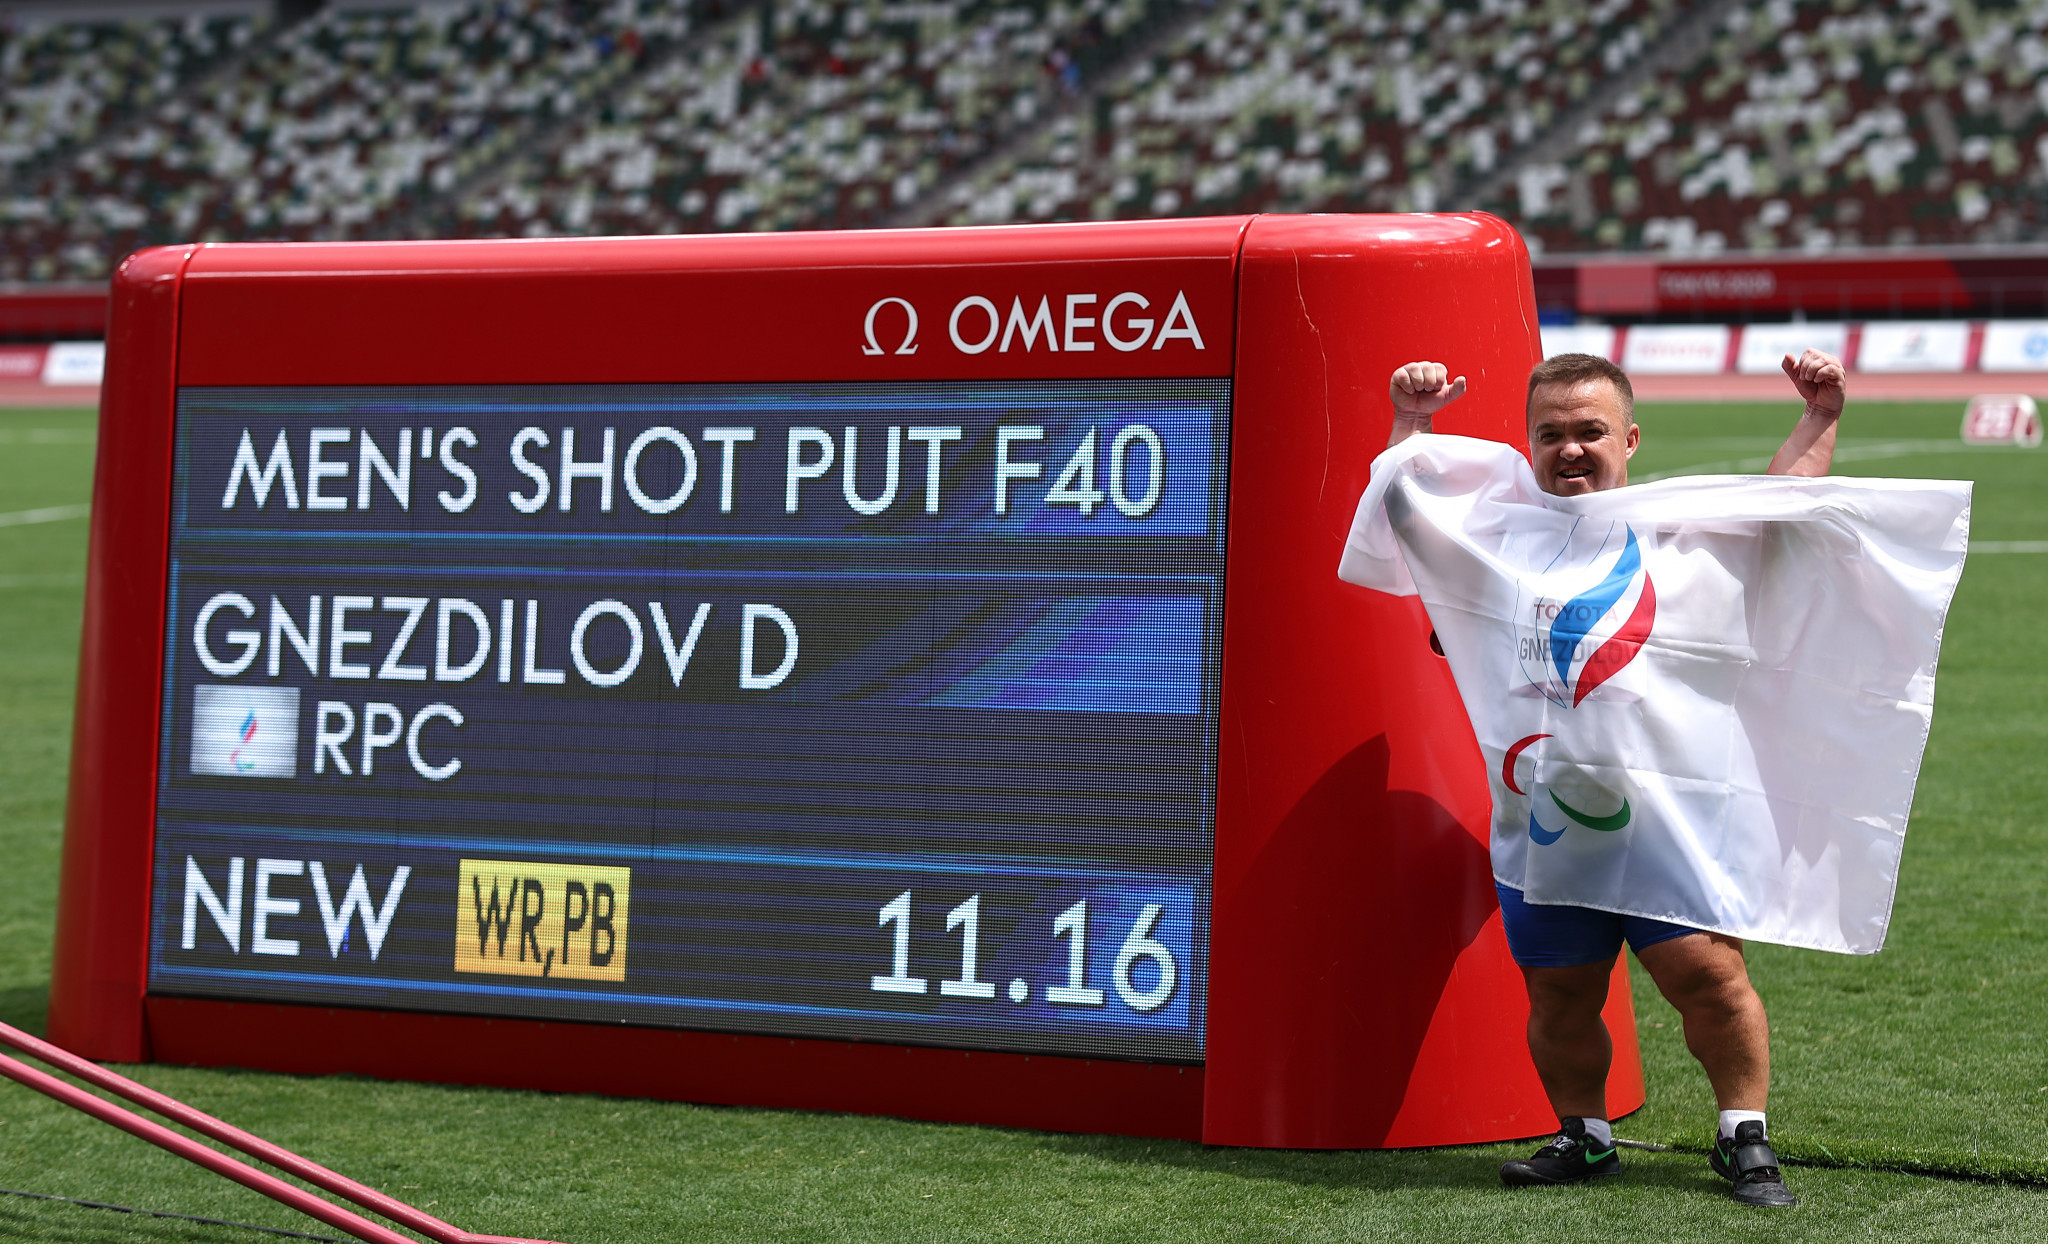 Denis Gnezdilov set a new world record in winning gold in the shot put F40 at the Tokyo 2020 Paralympics ©Getty Images